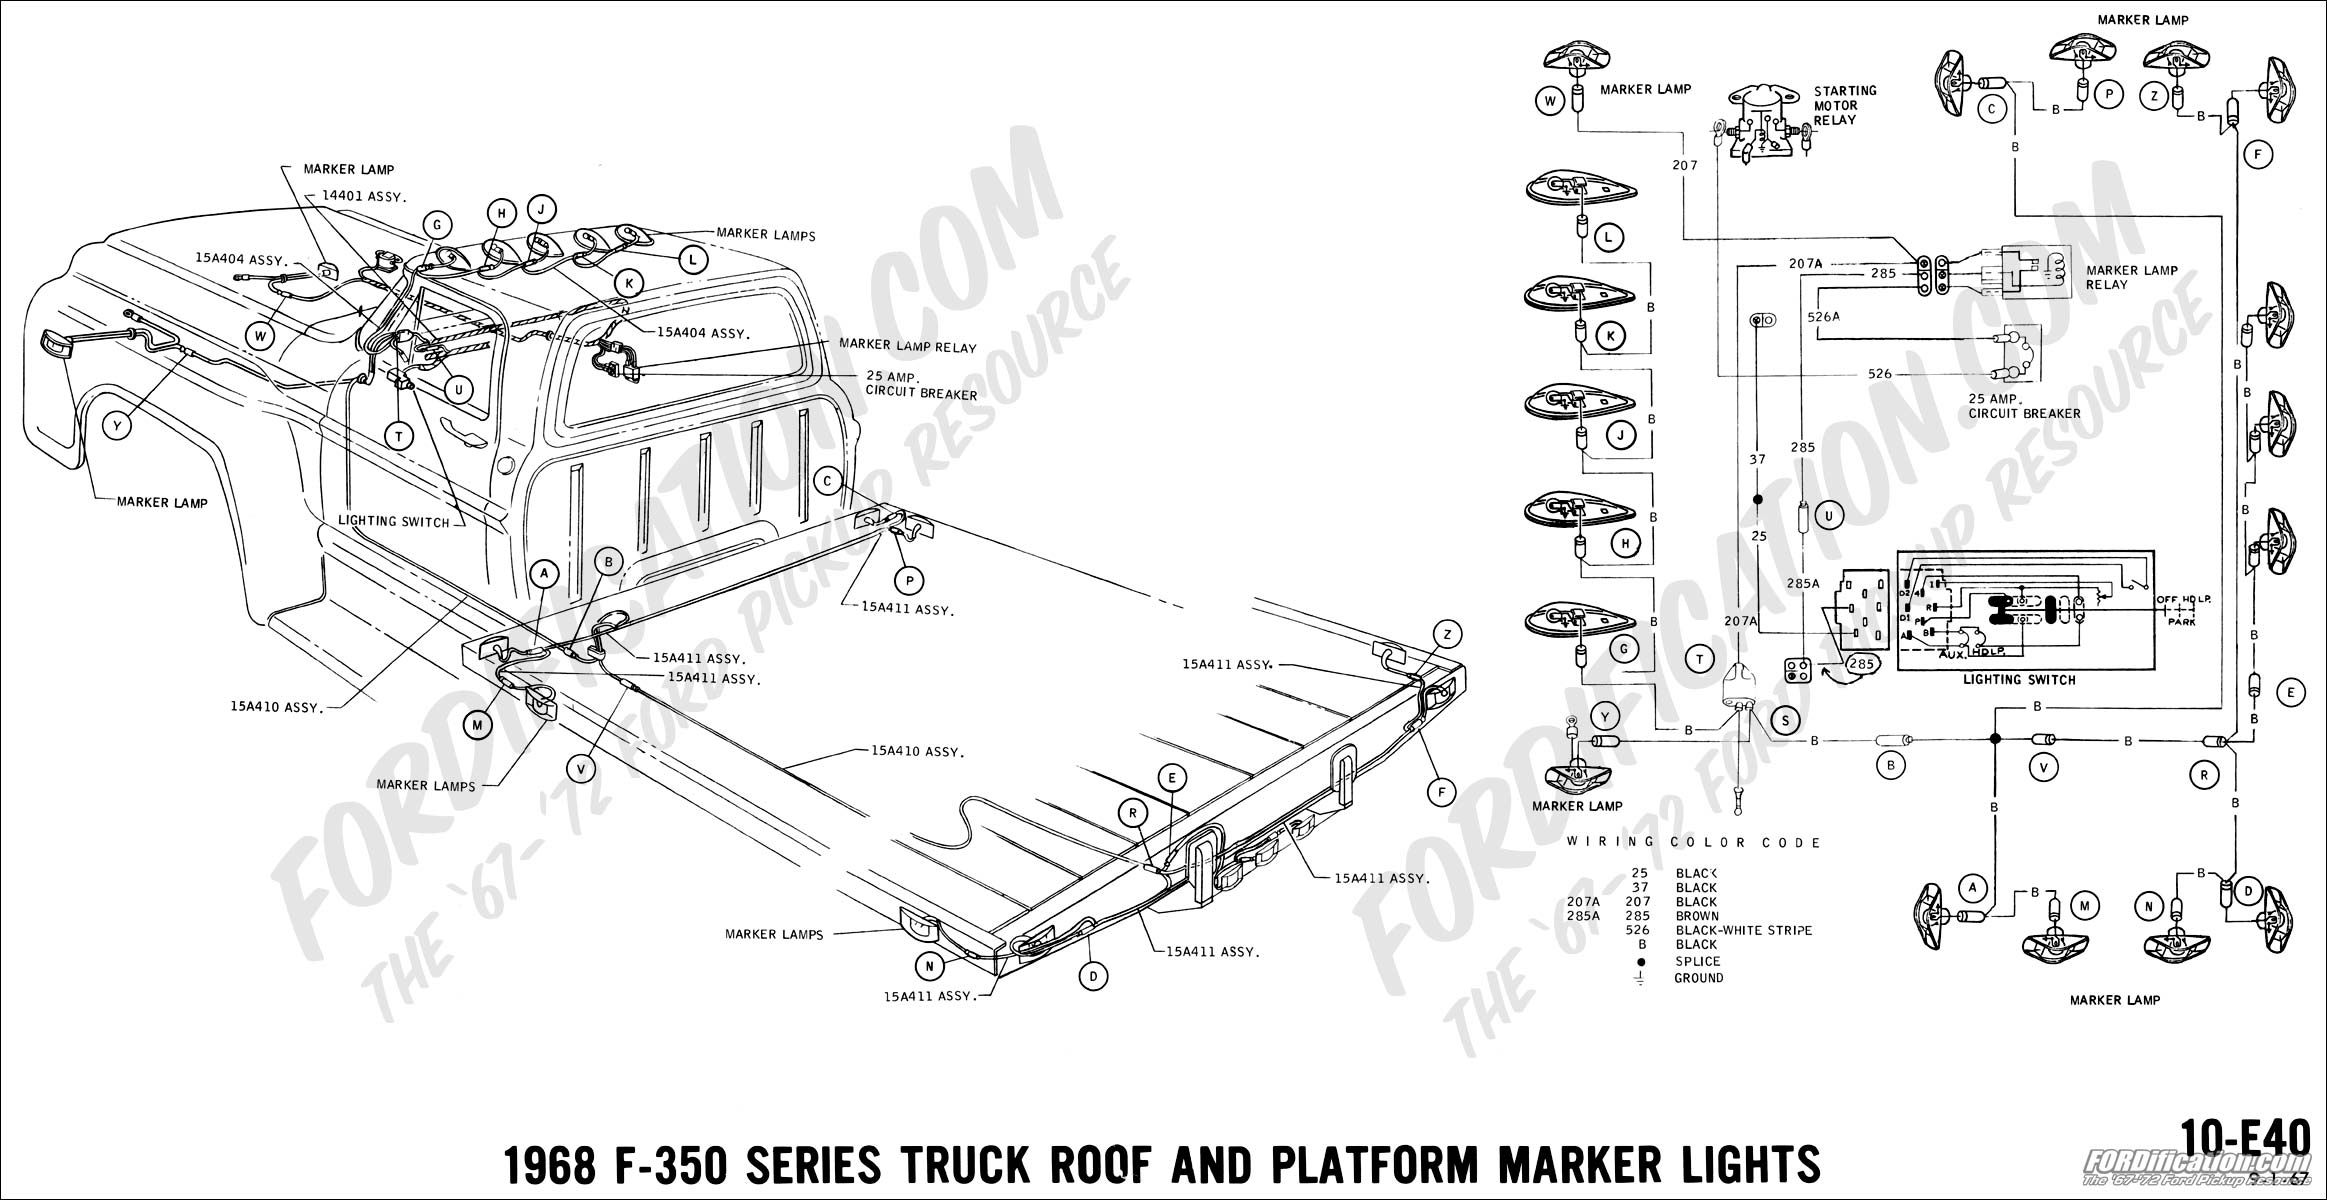 F750 Ke Light Wiring Diagram Library 1992 Saab 900 1968 F 350 Roof And Platform Marker Lights